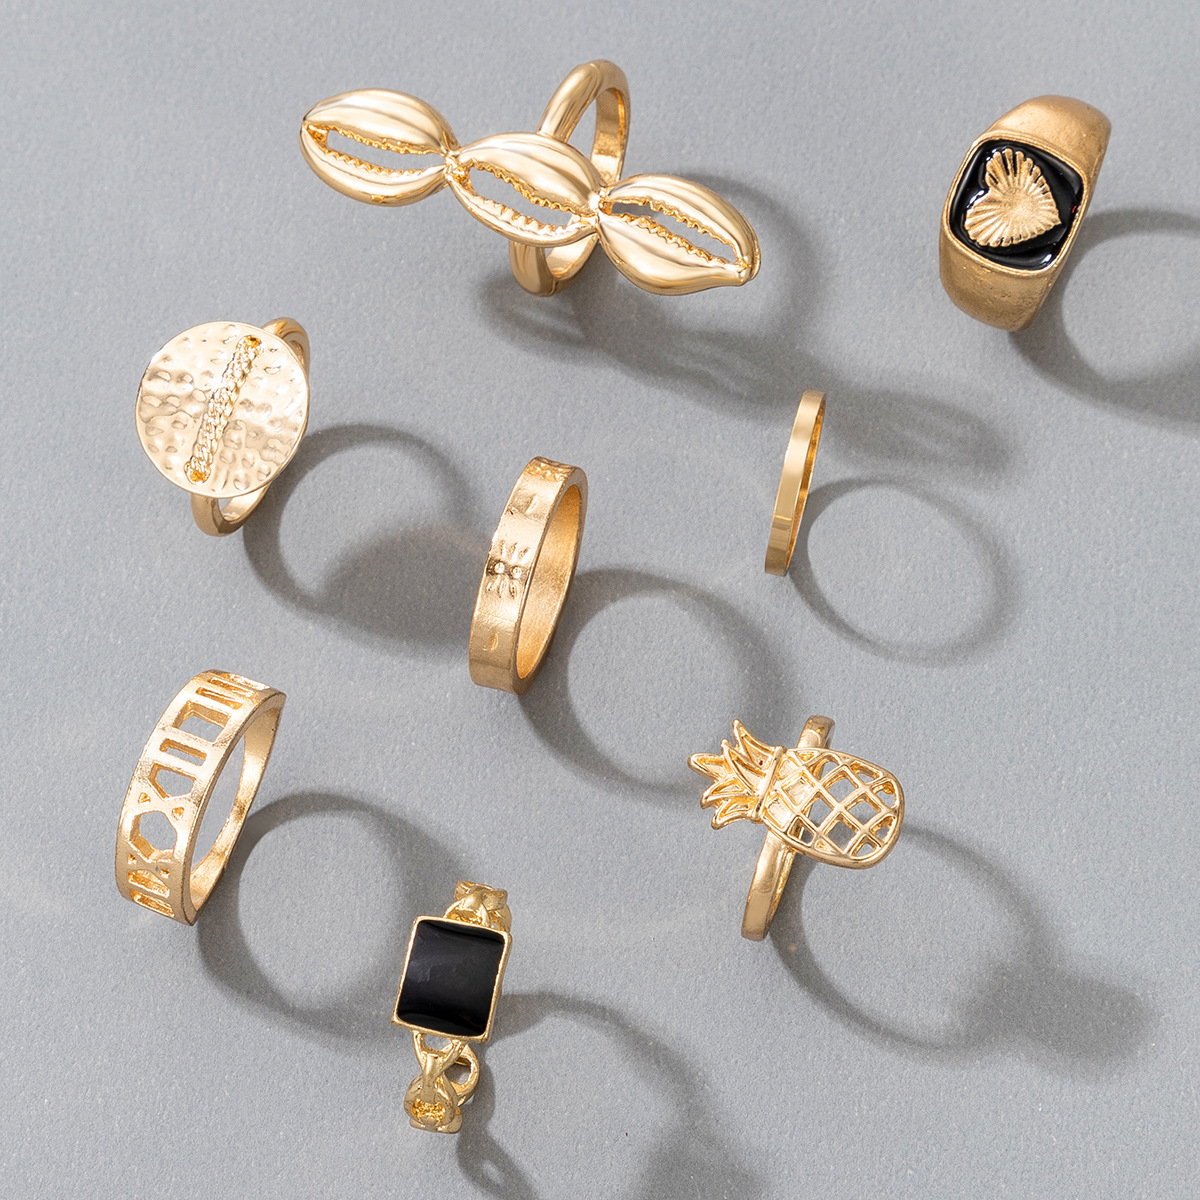 fashion exaggerated black oil dripping love pineapple shell geometric ring 8piece set NHGY303500